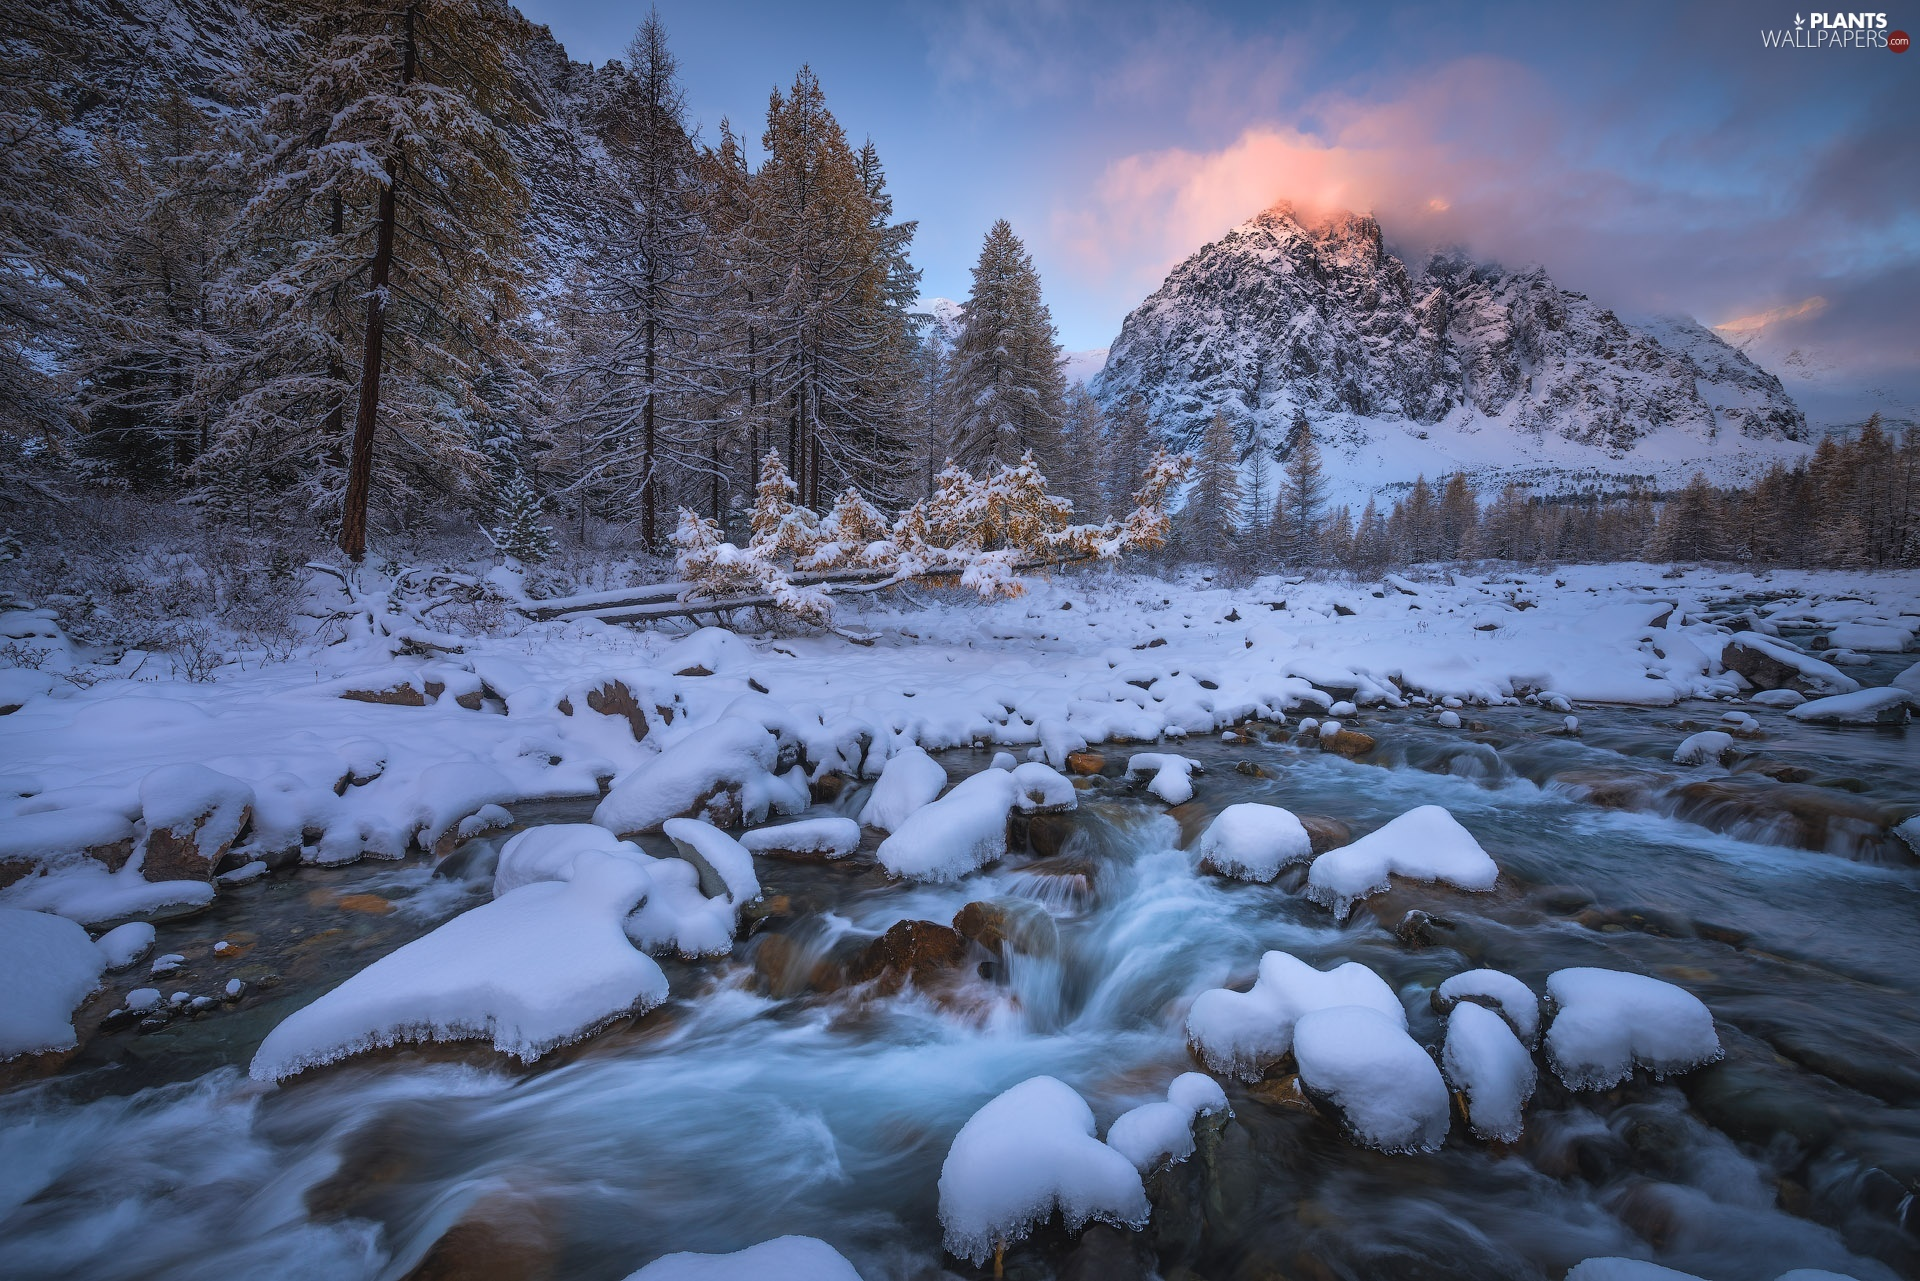 trees, River, fallen, Mountains, winter, viewes, trees